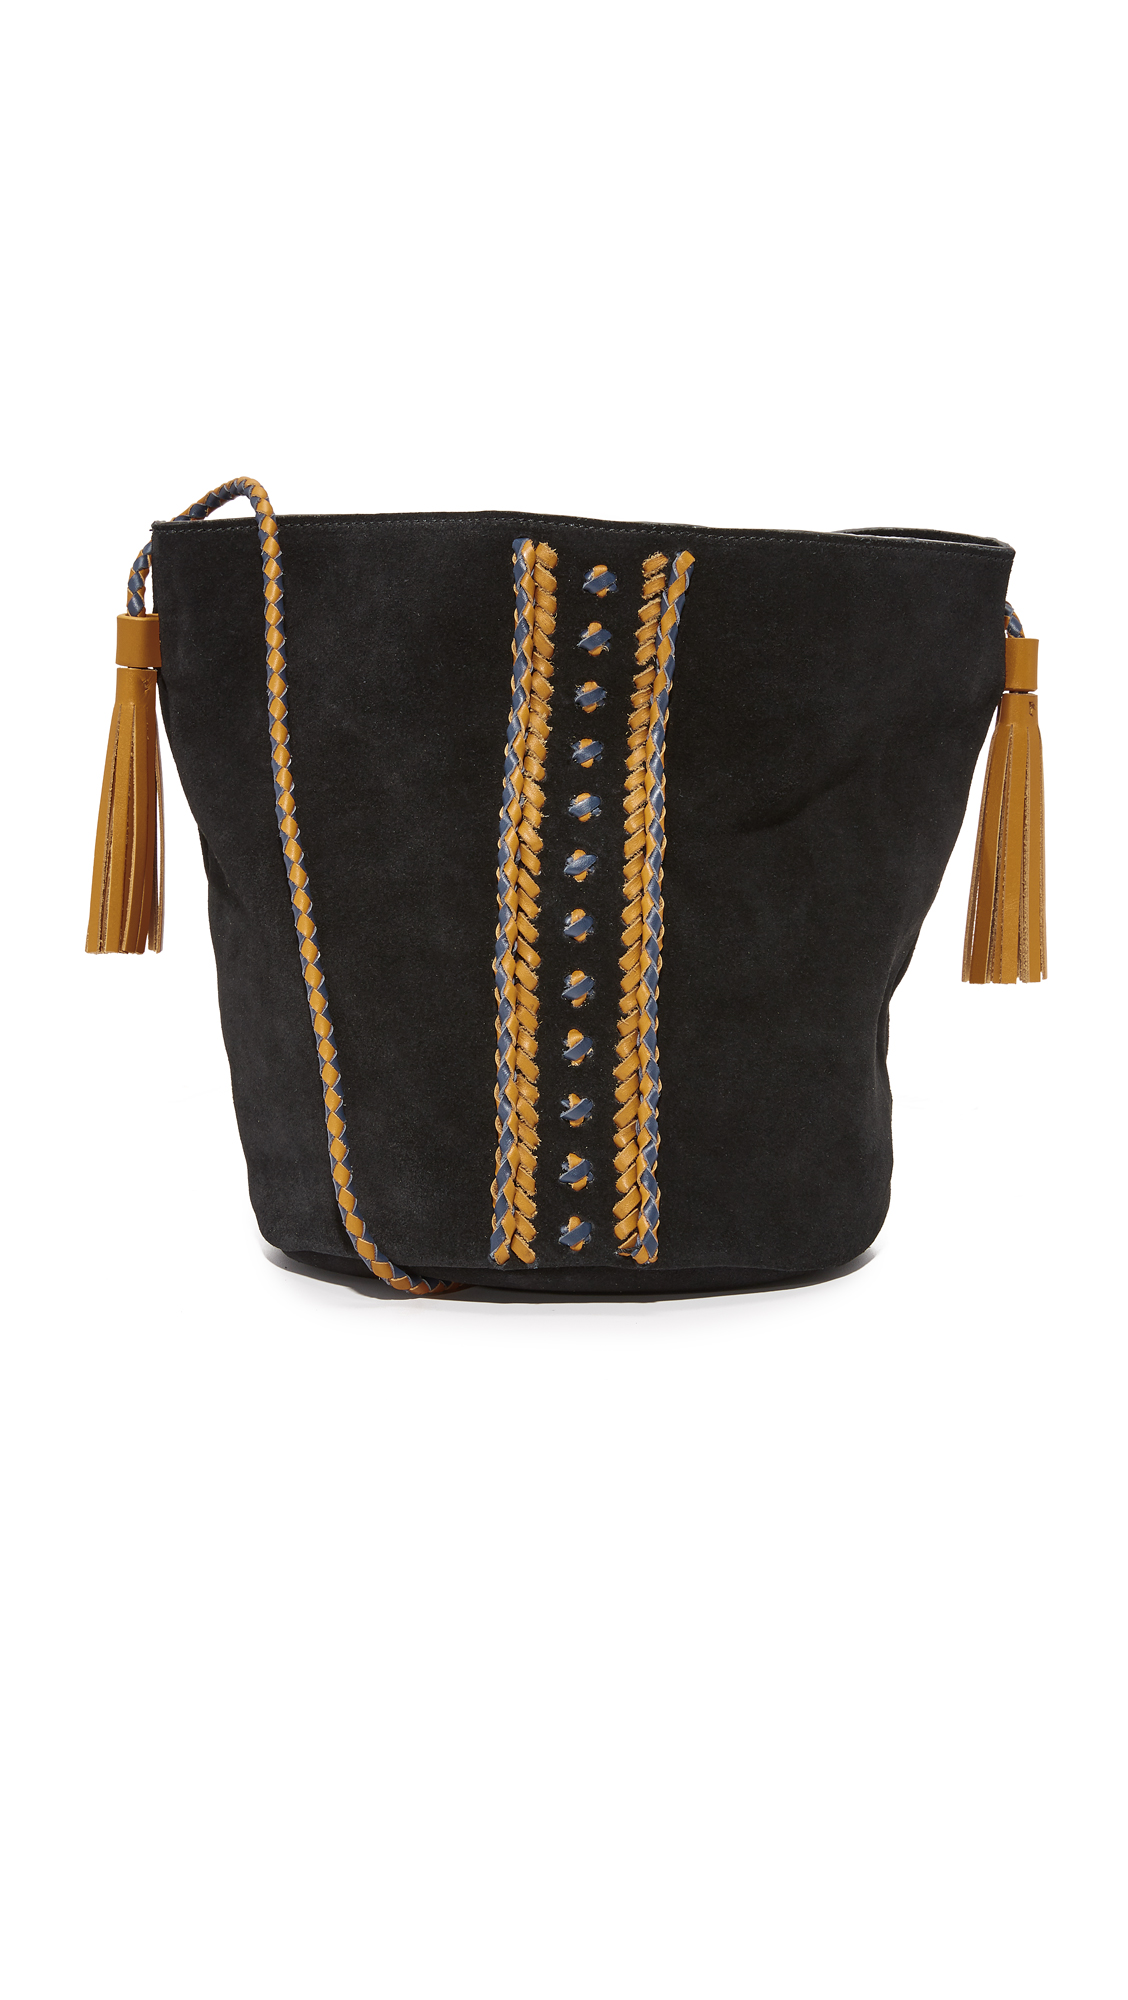 Antik Batik Dori Bag - Black